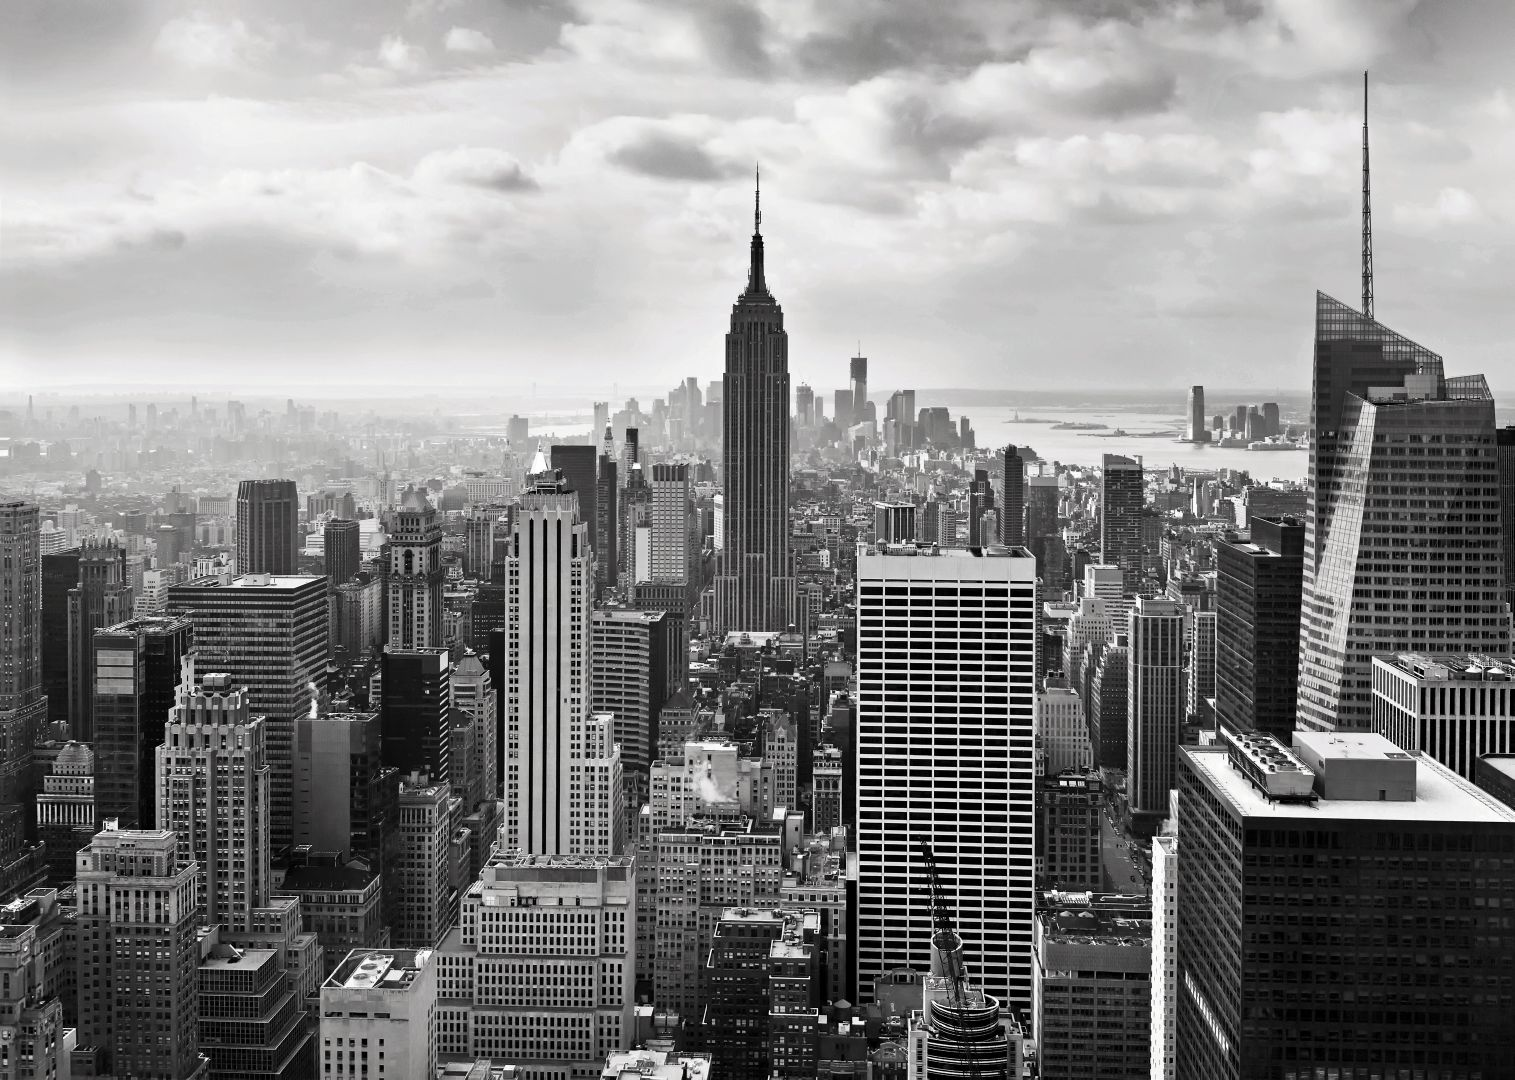 New-York-City-high-definition-background-images